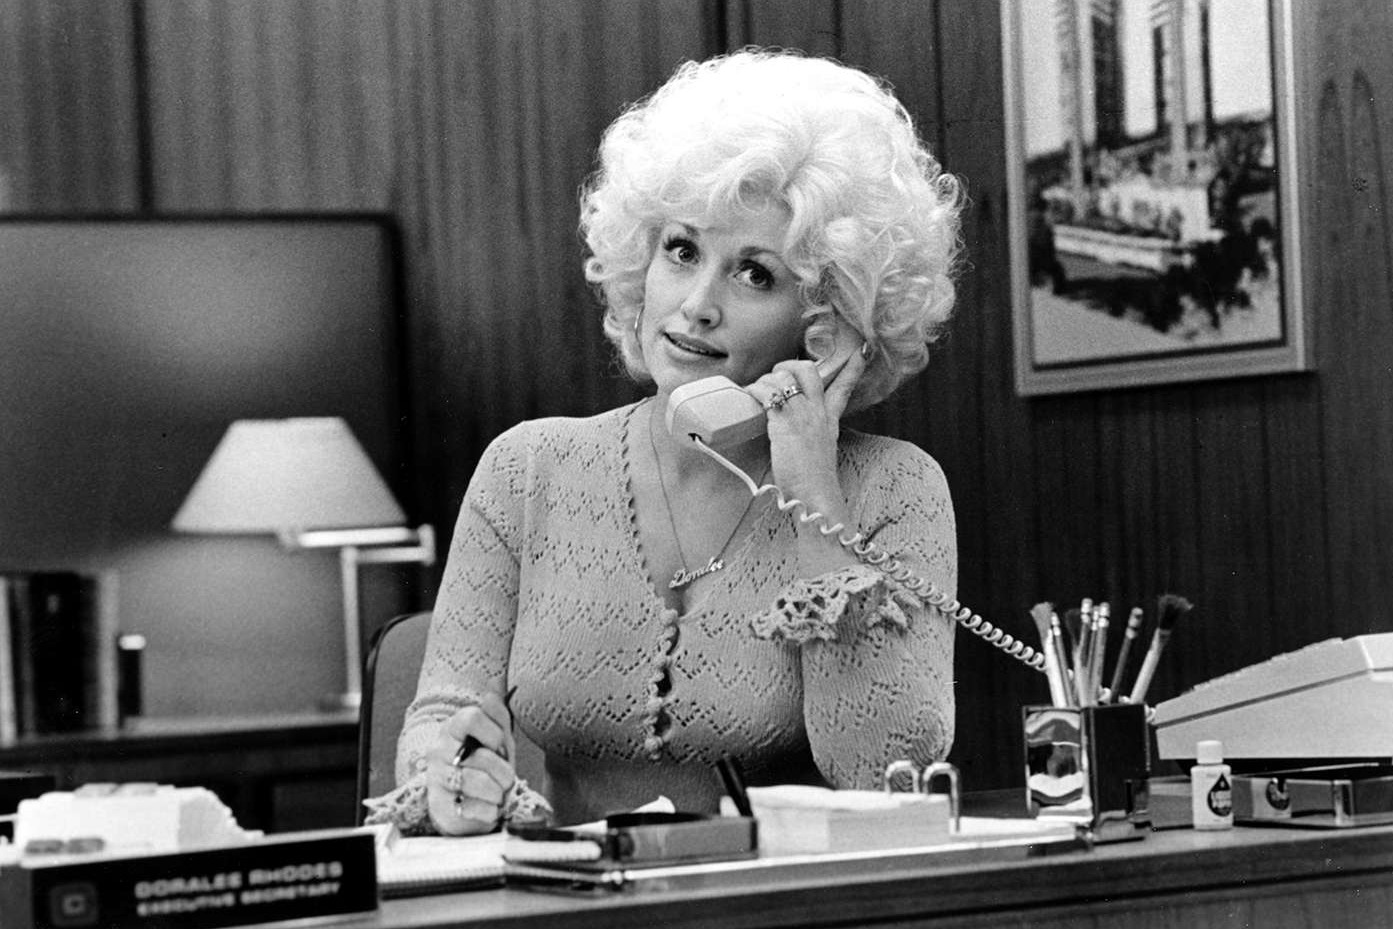 Article image: Dolly Parton 9 to 5